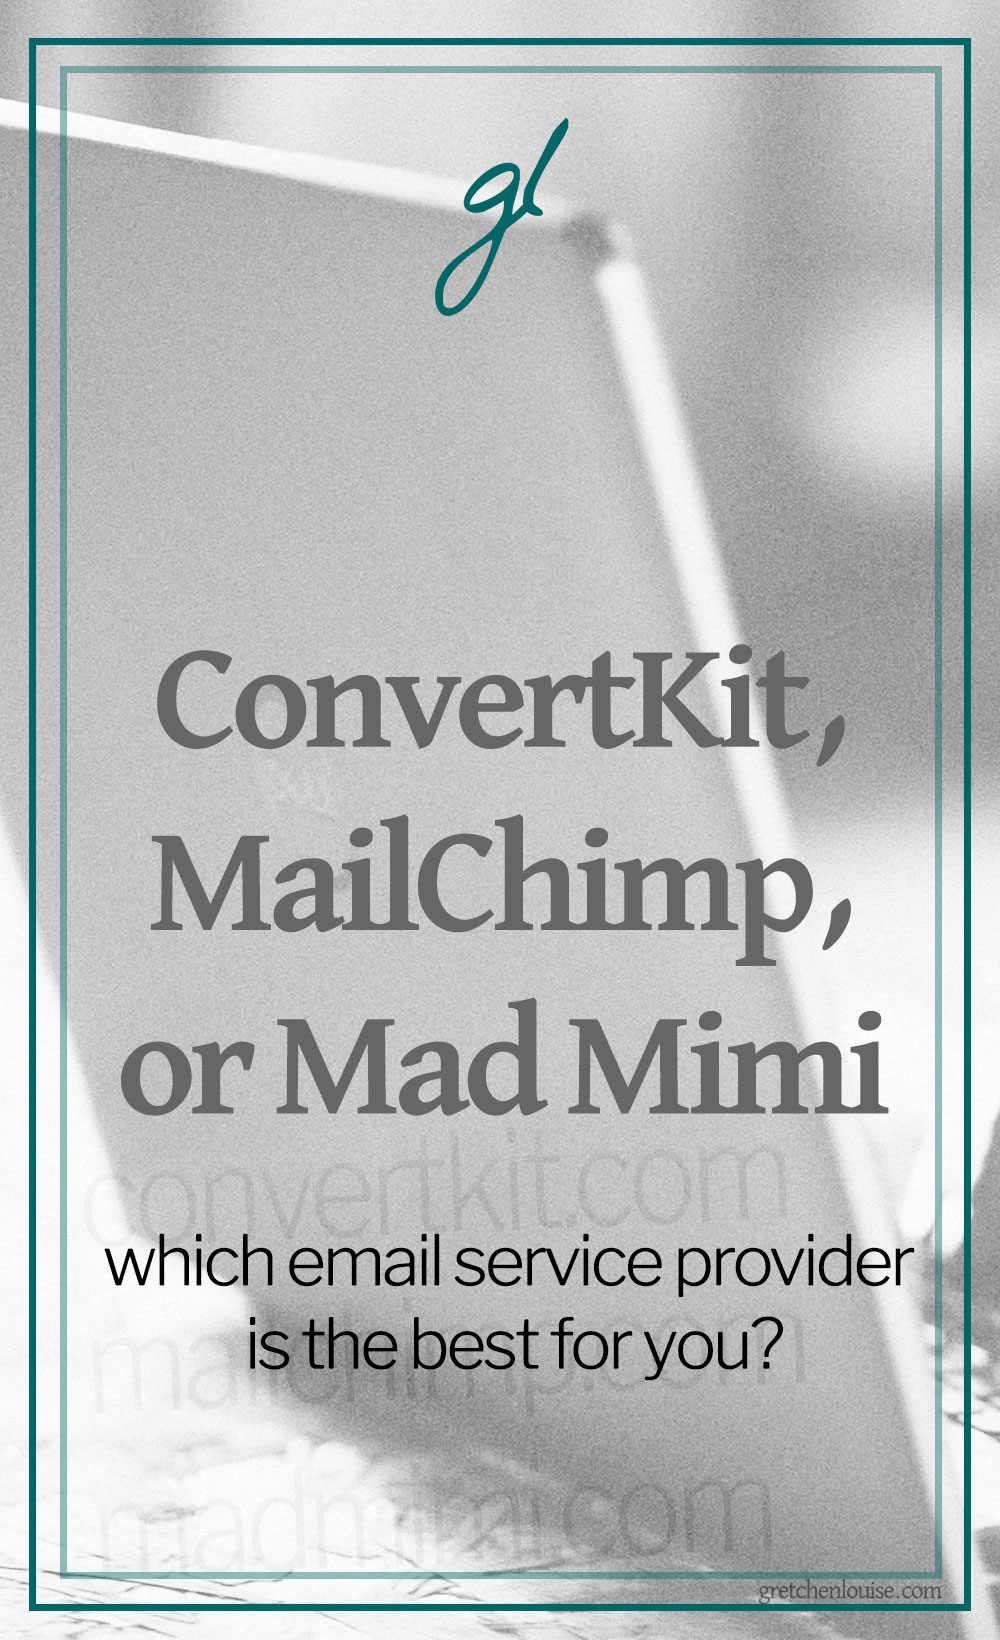 Choosing an email service provider can be daunting--whether you can't stand your current service and are anxious to move elsewhere or you're just beginning to build an email list and don't know where to start. Regardless, you'd like to choose the perfect solution from which you'll never have to move. via @GretLouise